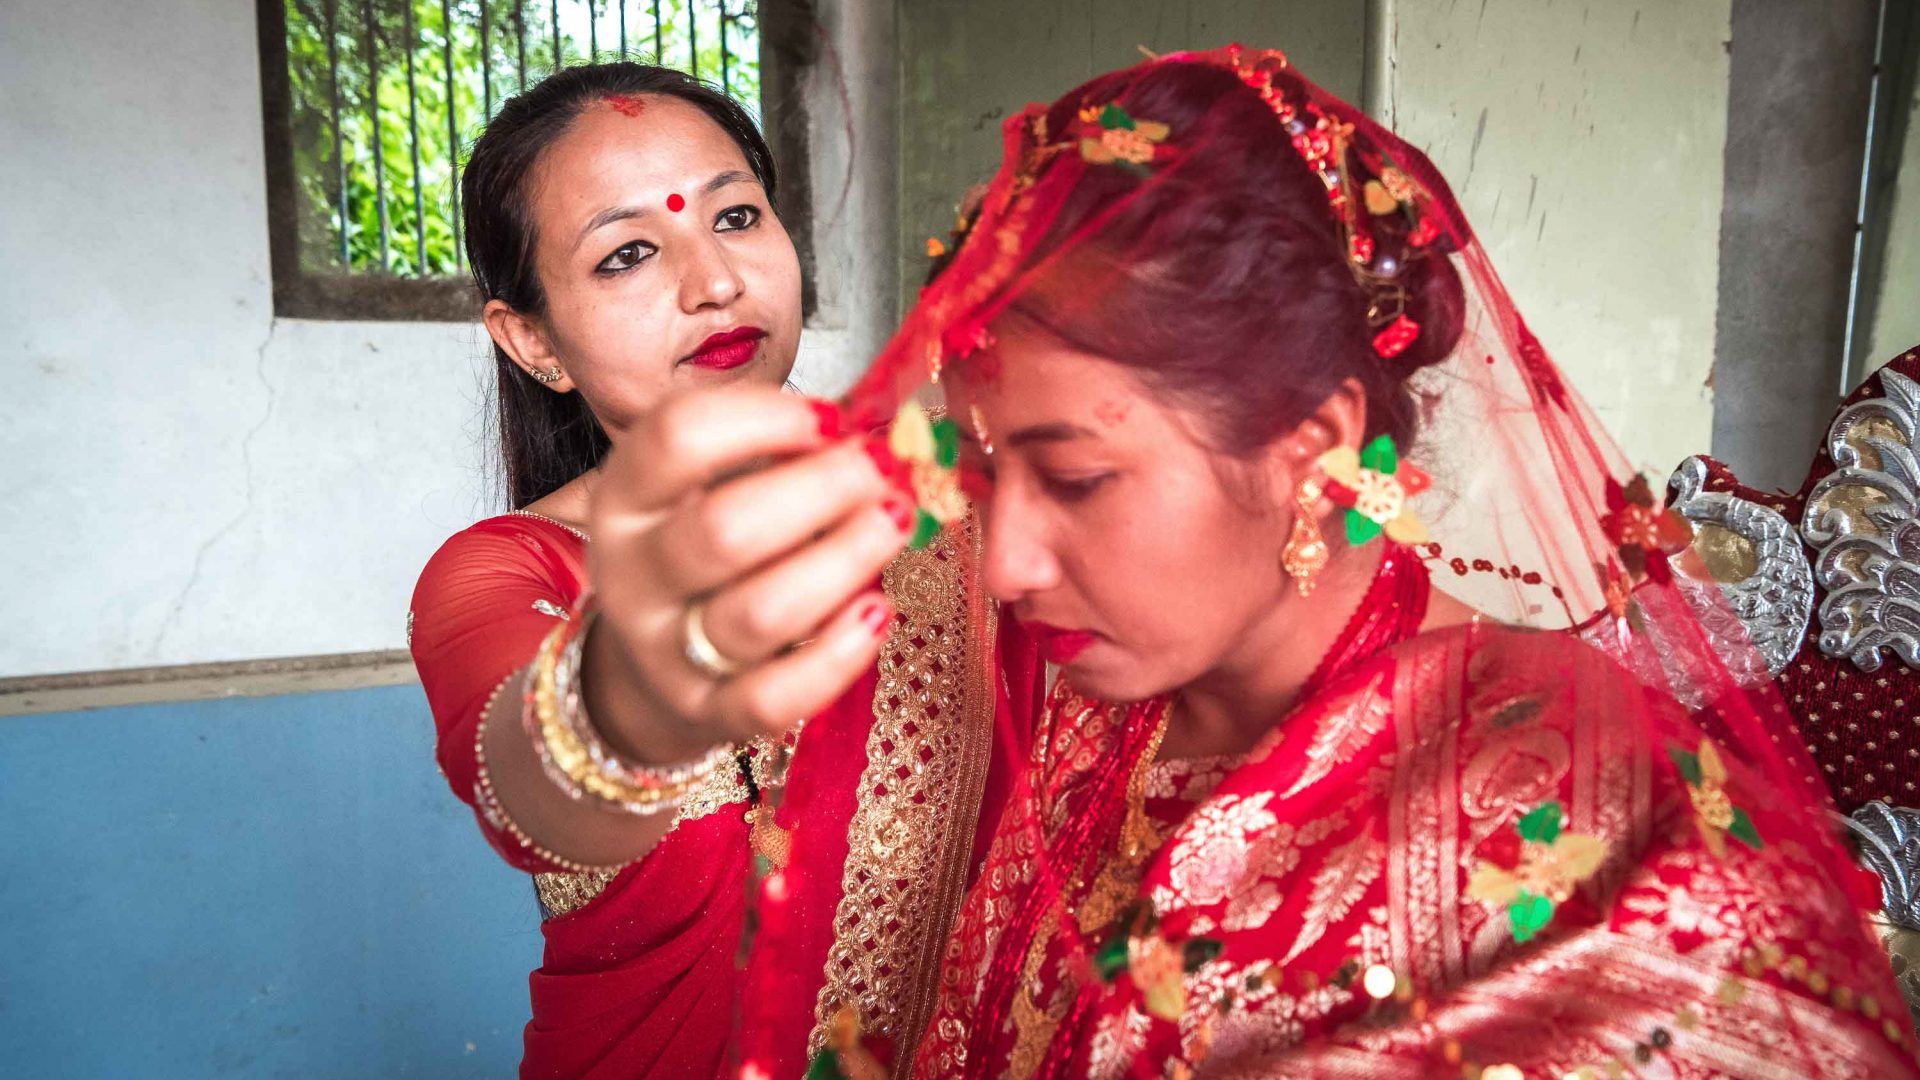 A bride gets ready at a wedding in Panauti, Nepal.